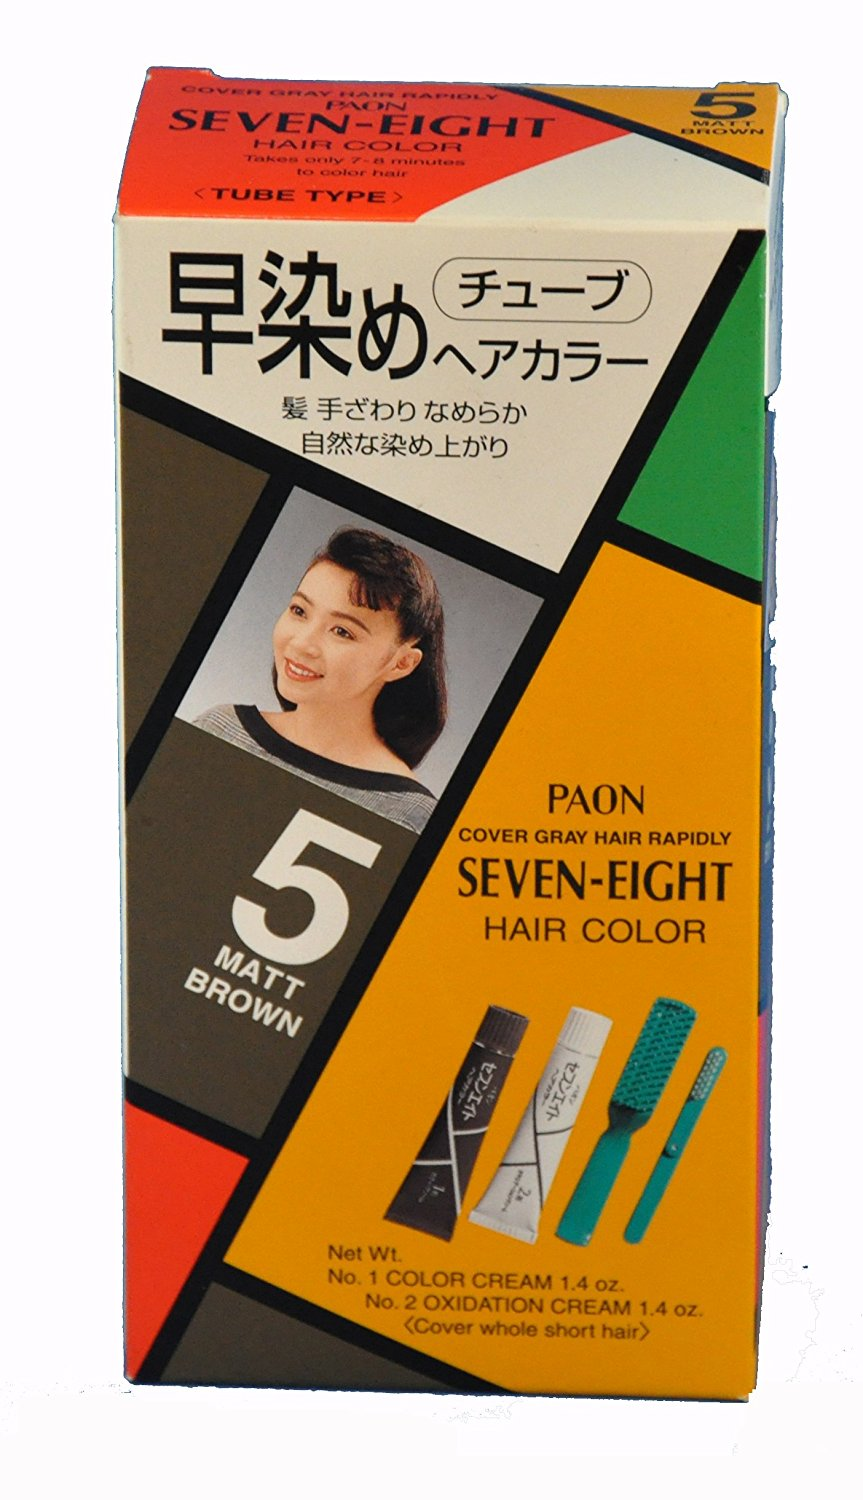 Paon Seven Eight Hair Color 5 Matt Brown Tube 1 Color Cream 14